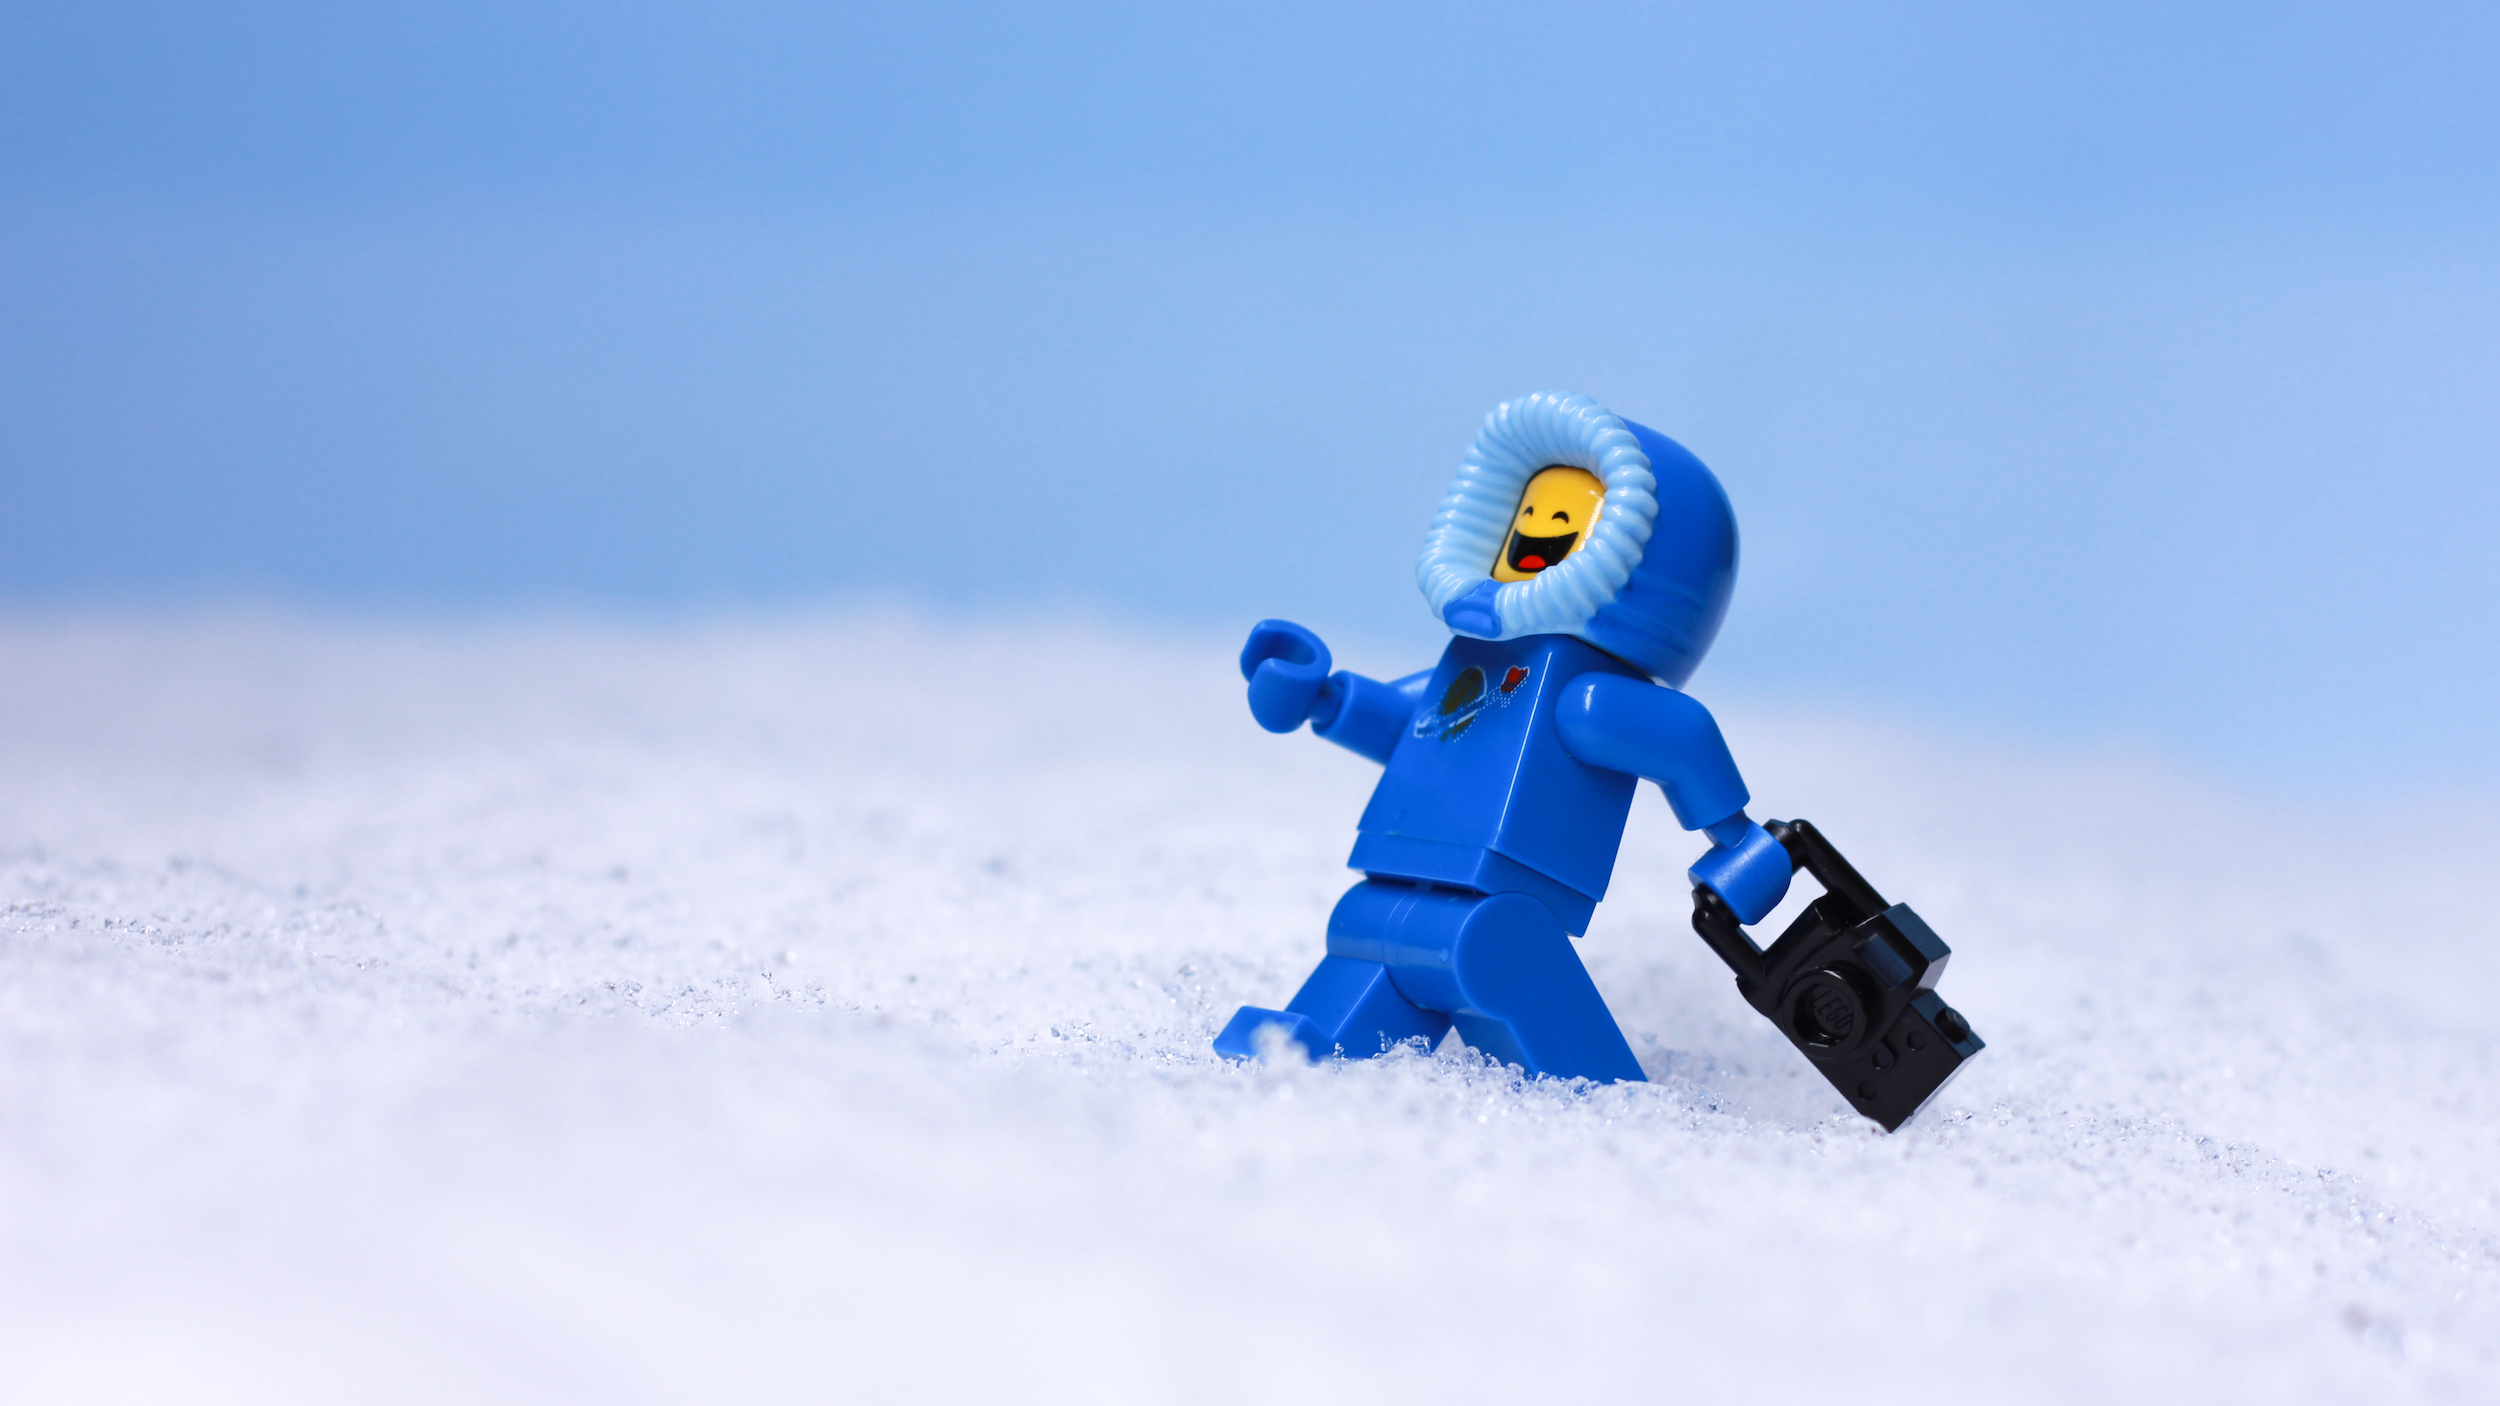 blue LEGO benny spaceman holds camera by James Garcia